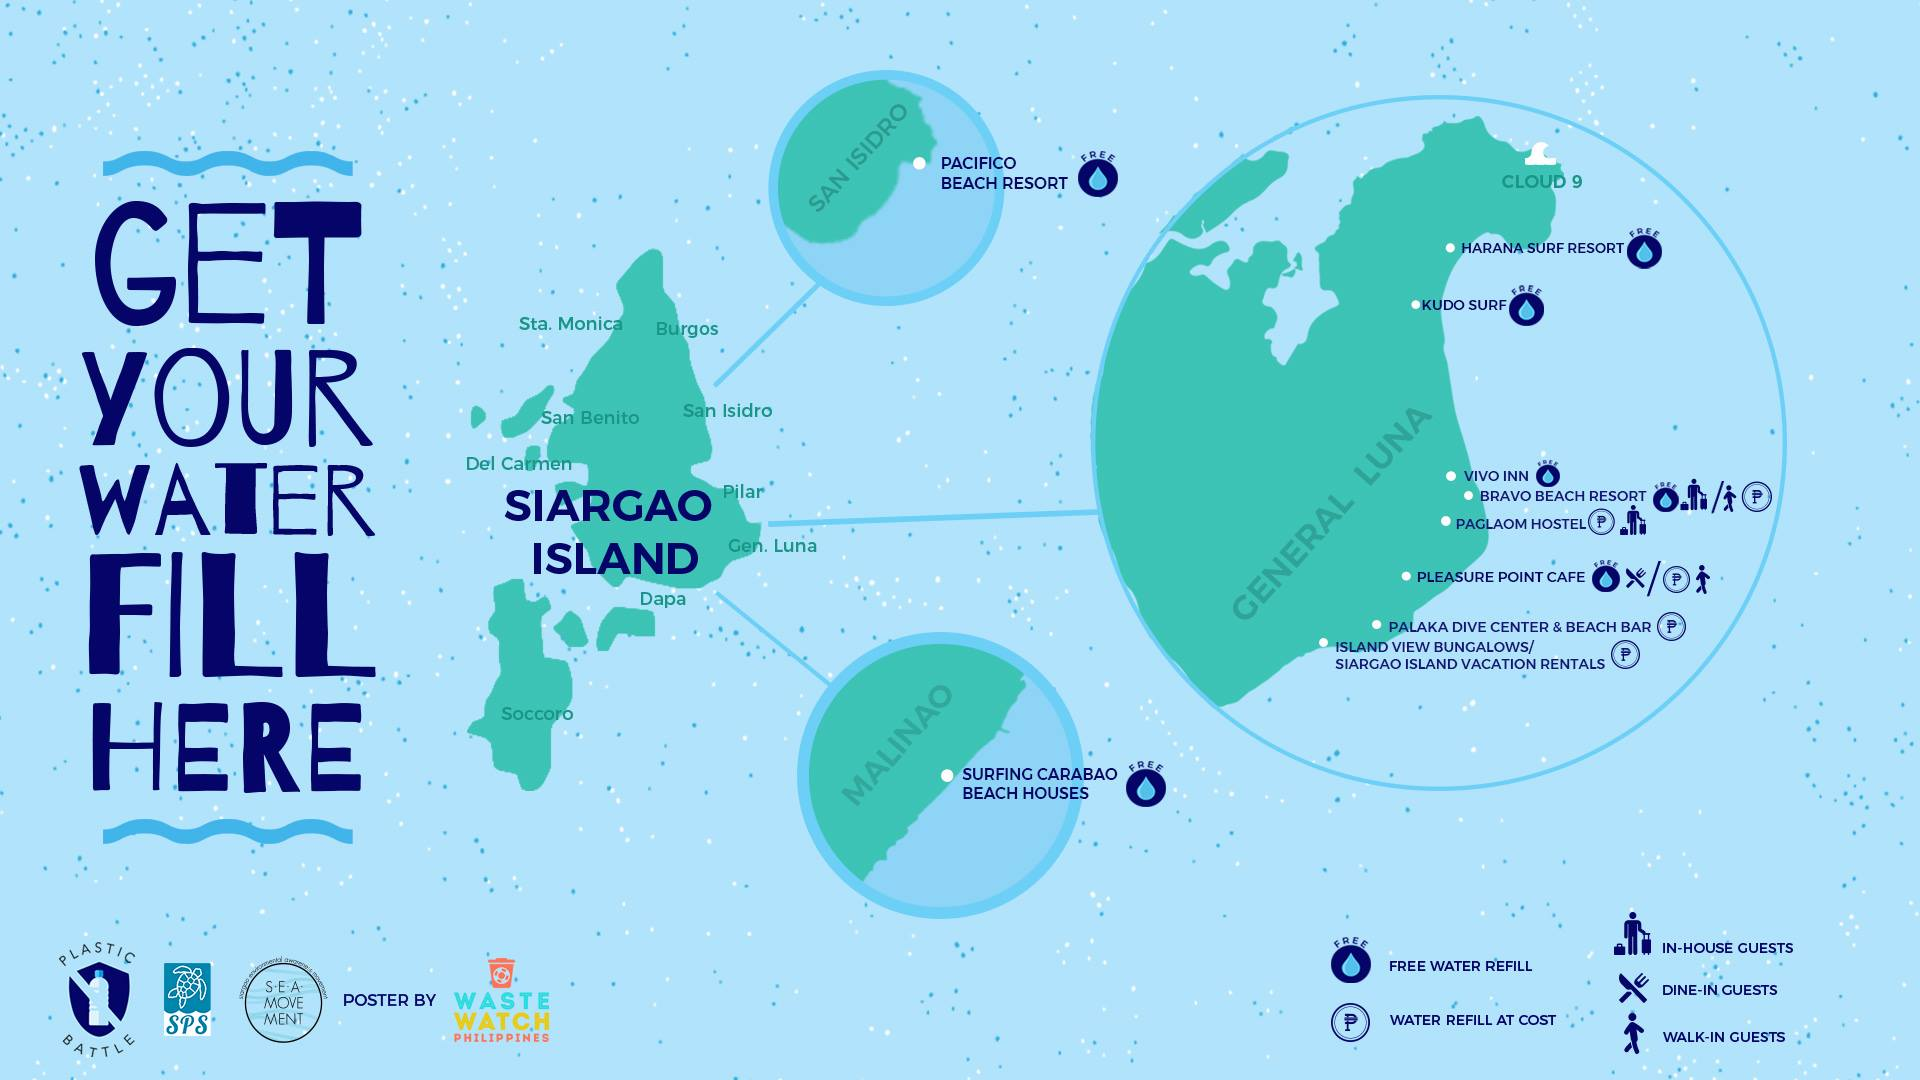 Sustainable Practices and Habits - Harana Surf Resort